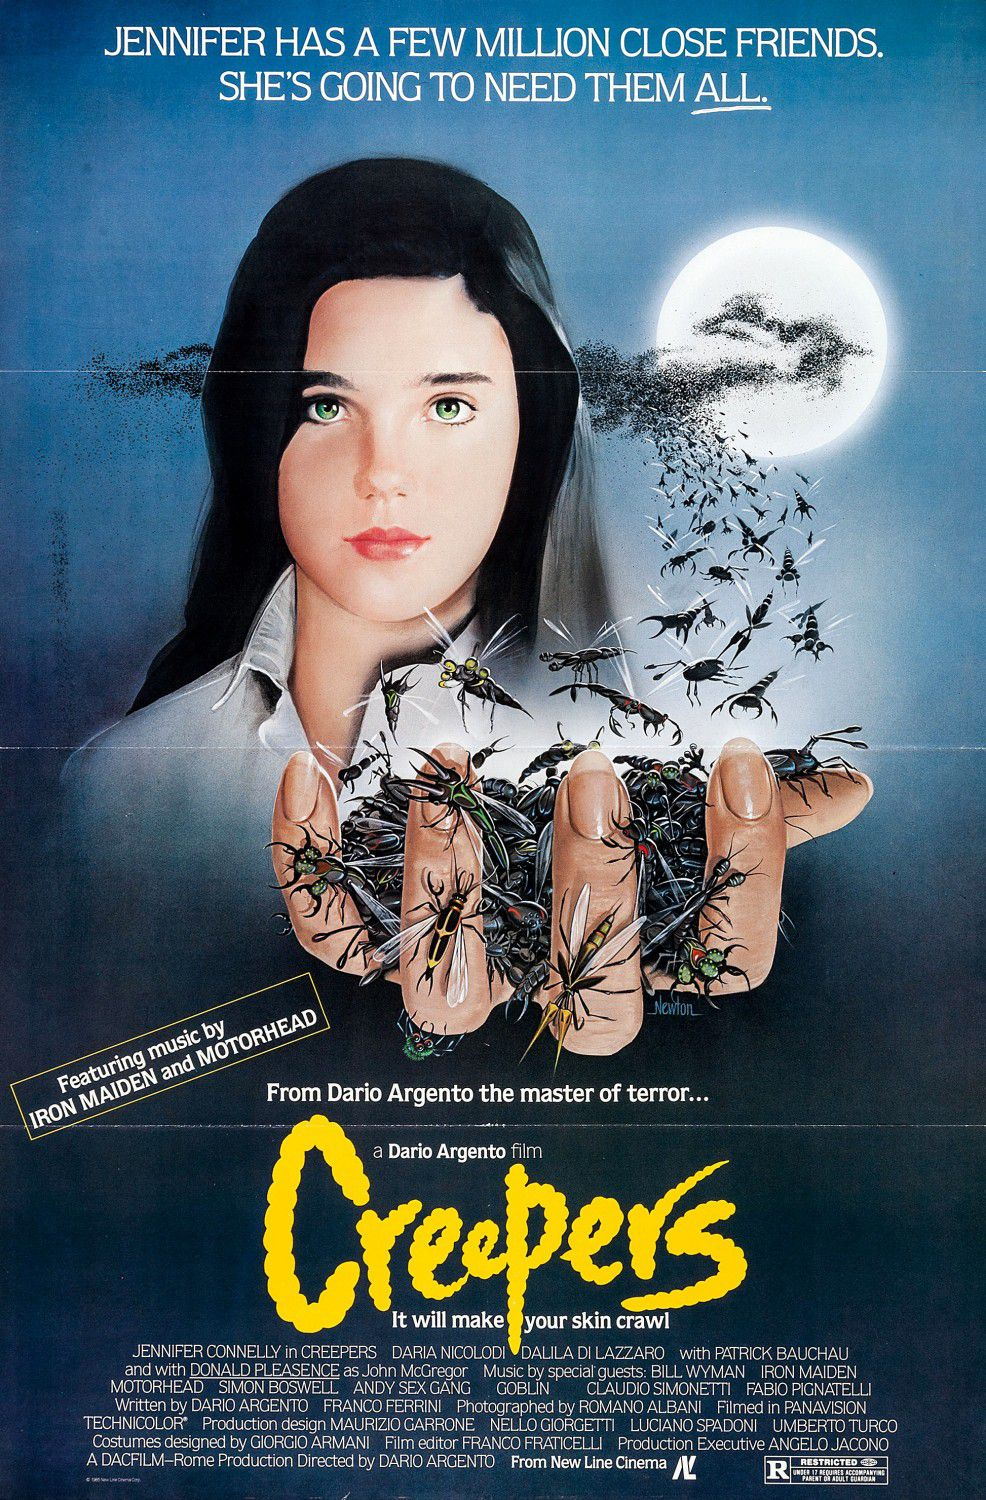 Phenomena - Creepers - Dario Argento 1985